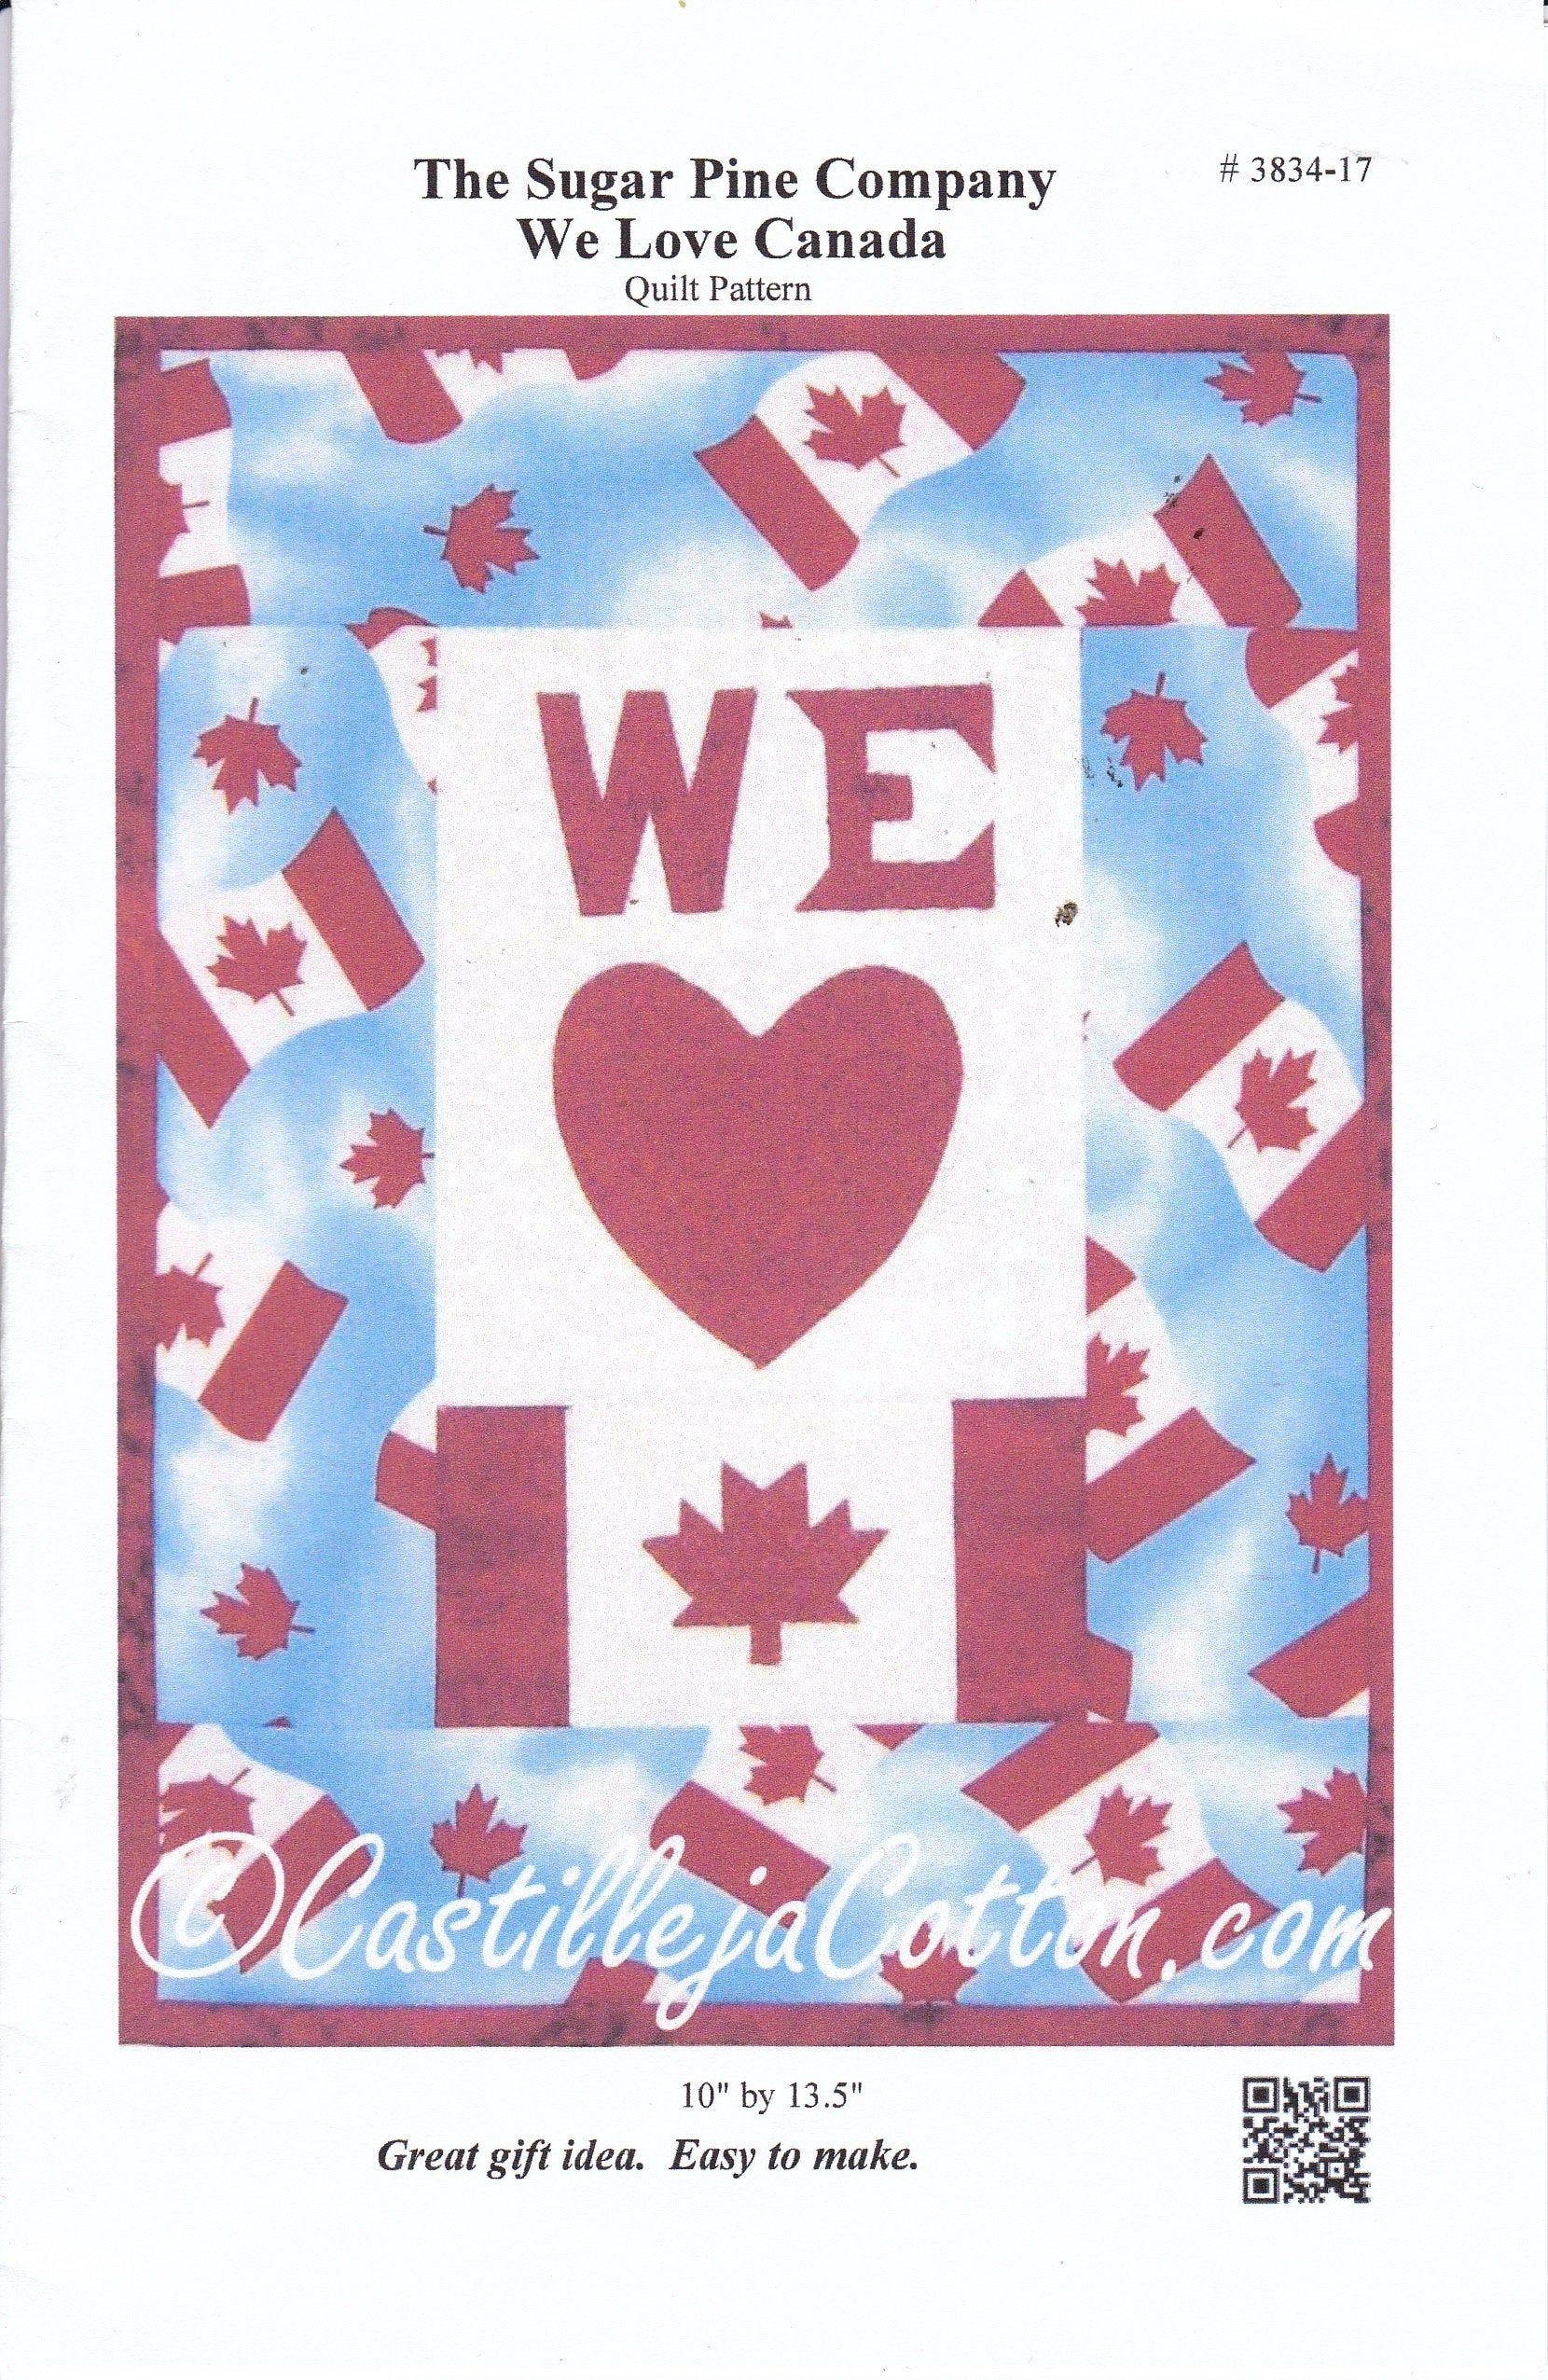 We Love Canada Quilt Pattern The Sugar Pine Company 10 X 13 5